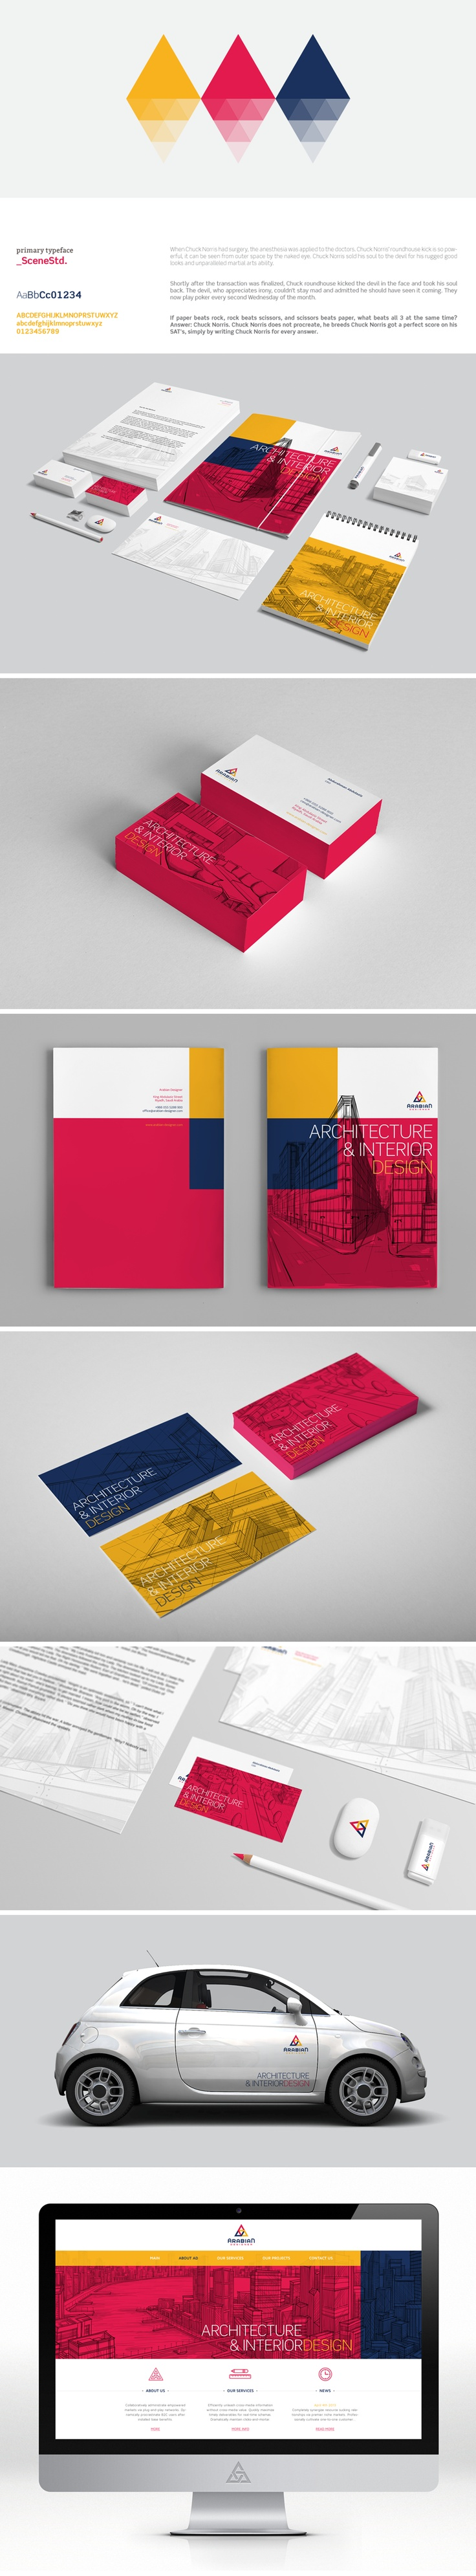 triptic - nice to see the smart use of a darker yellow for an effective primary color scheme.